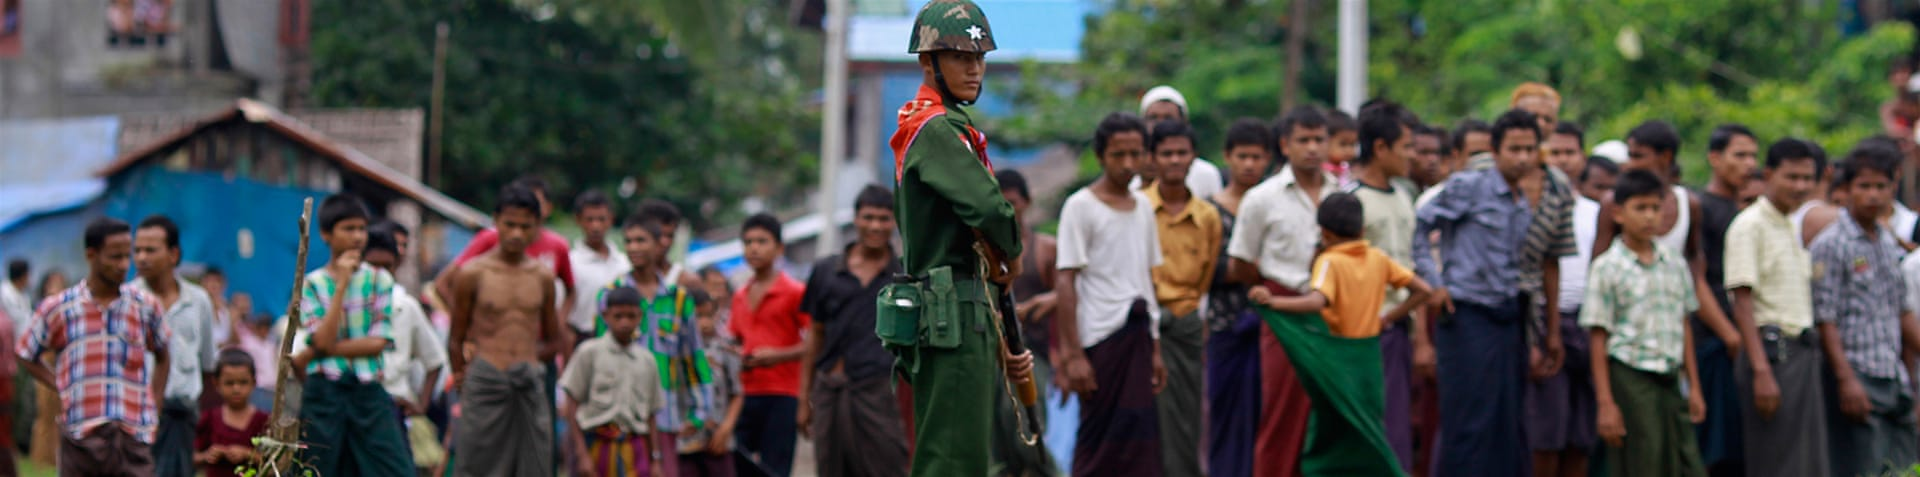 Any rise in violence in Rakhine will be a major concern for Myanmar's new civilian government [Reuters File Photo]